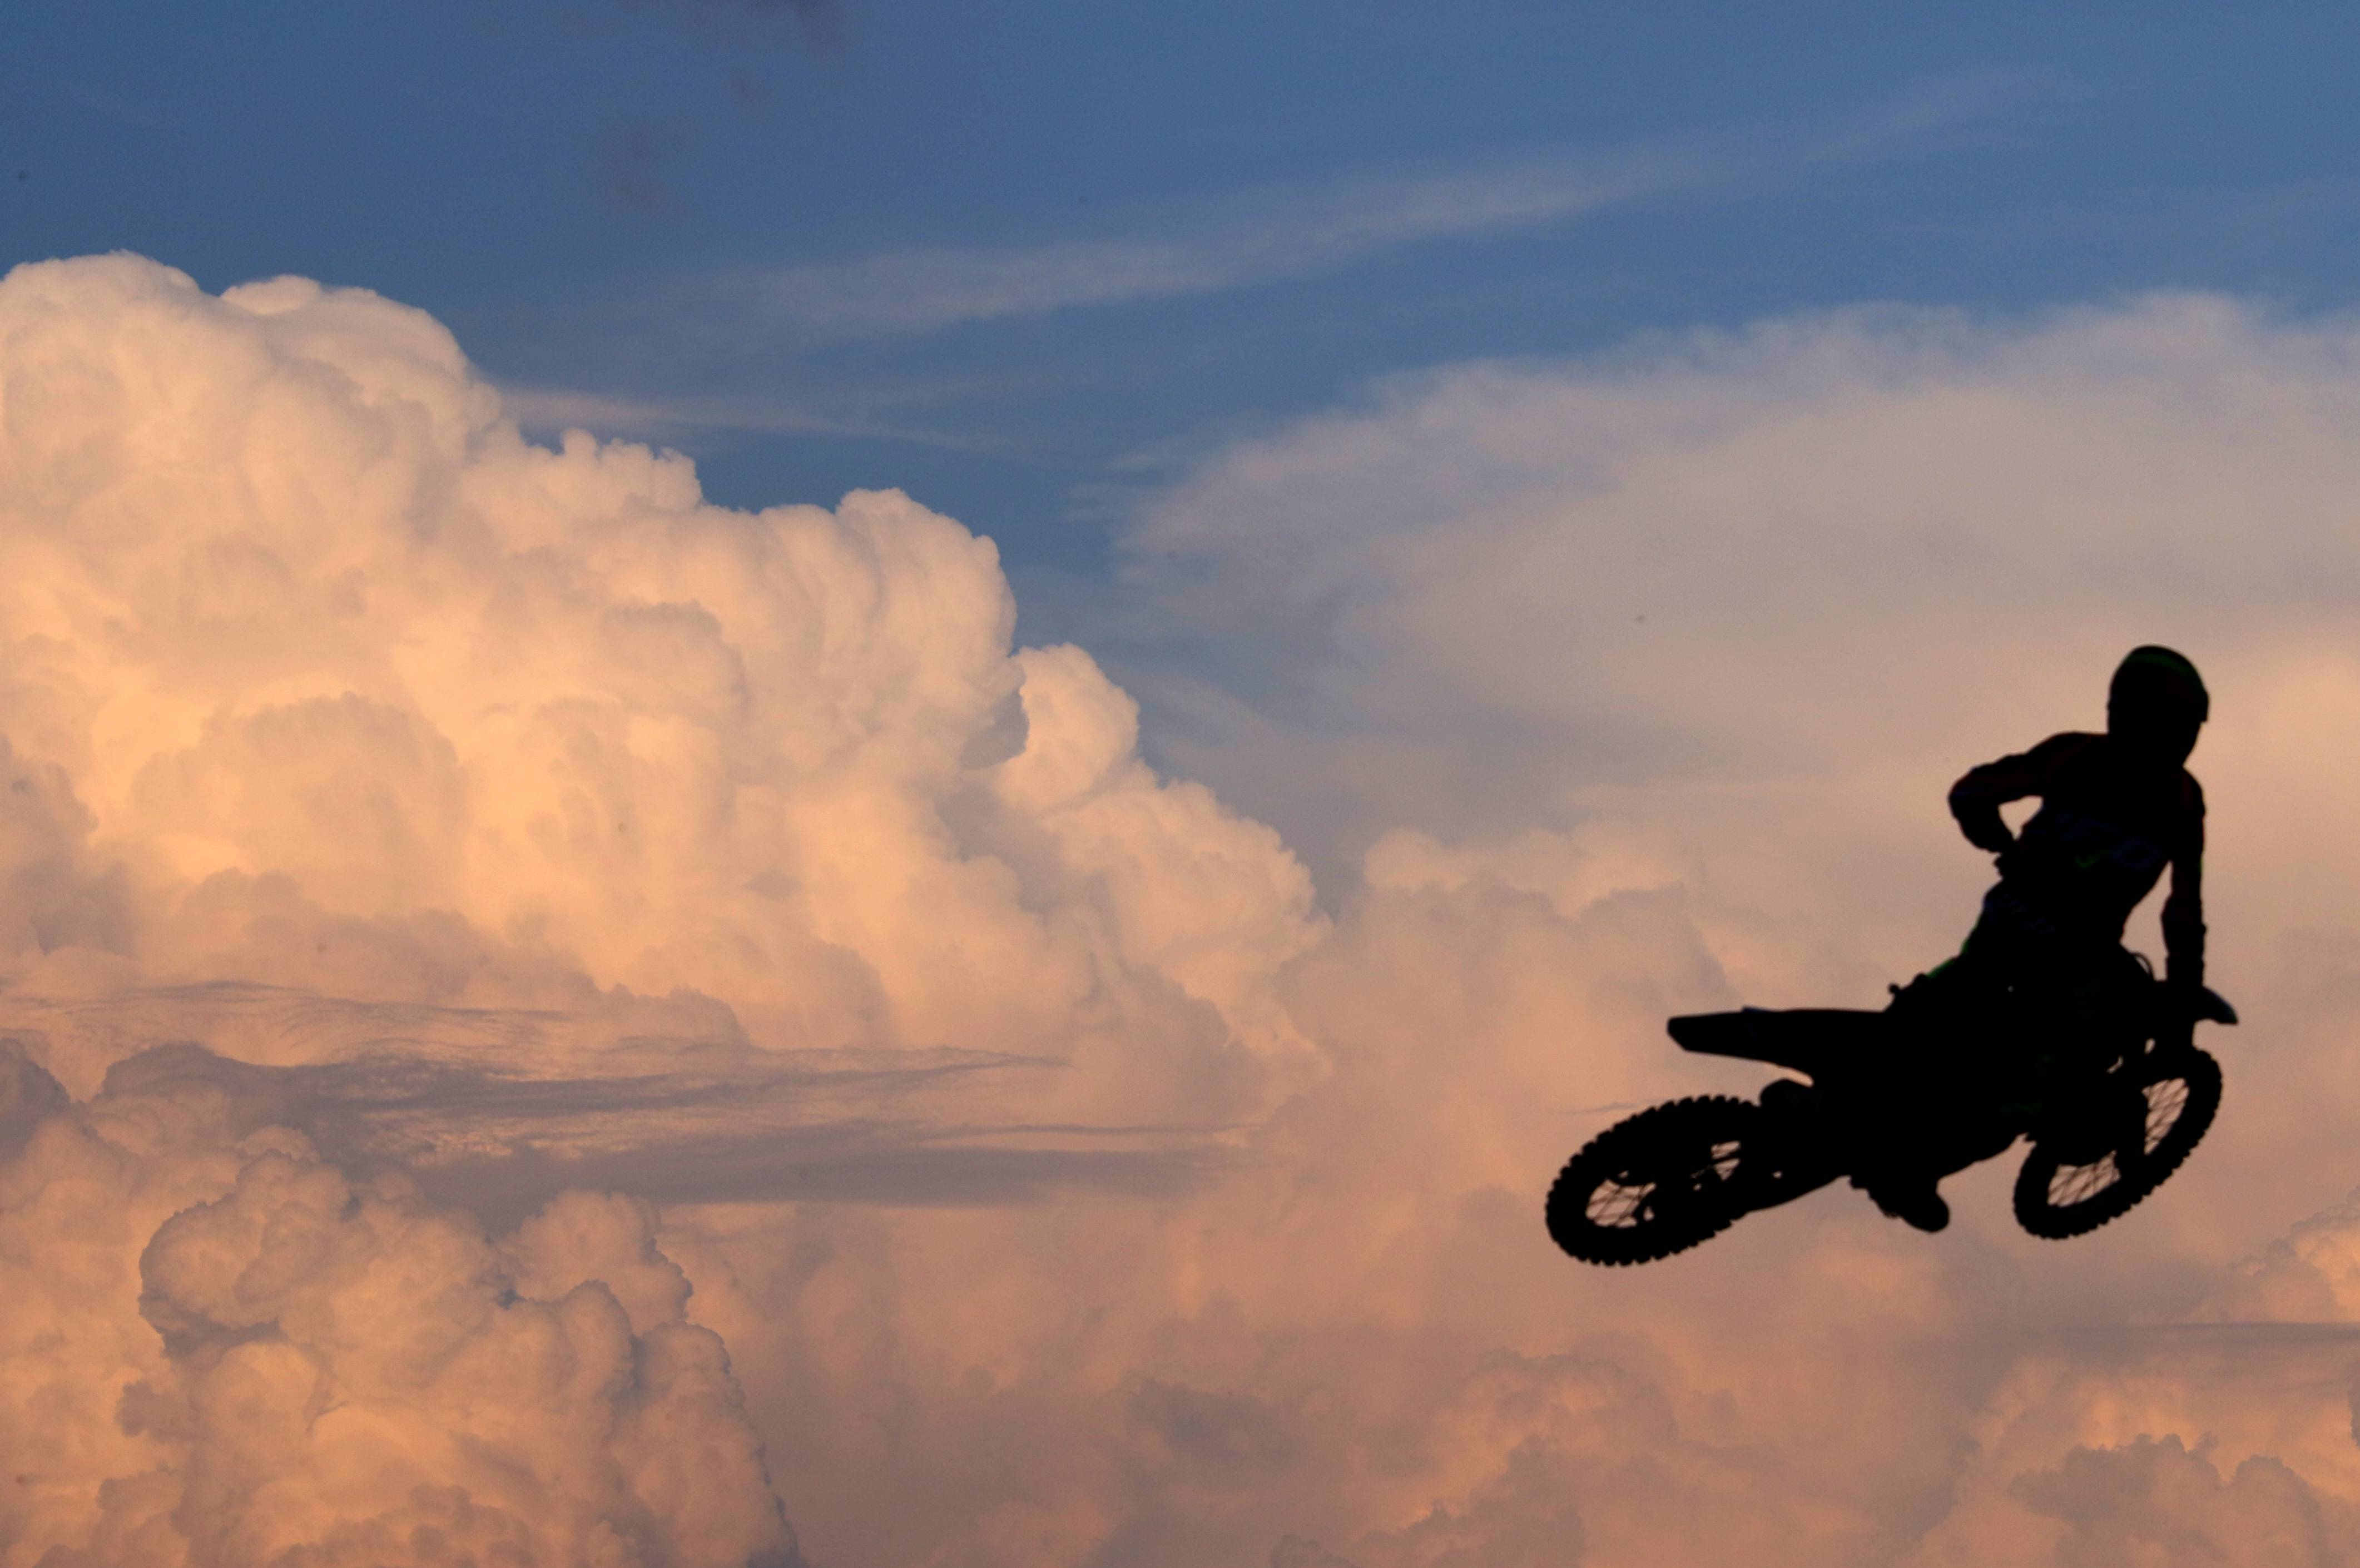 A racer soars during Woodstock MX Motocross Racing at the grandstand Thursday night at the McHenry County Fair in Woodstock. The fair continues through Sunday.